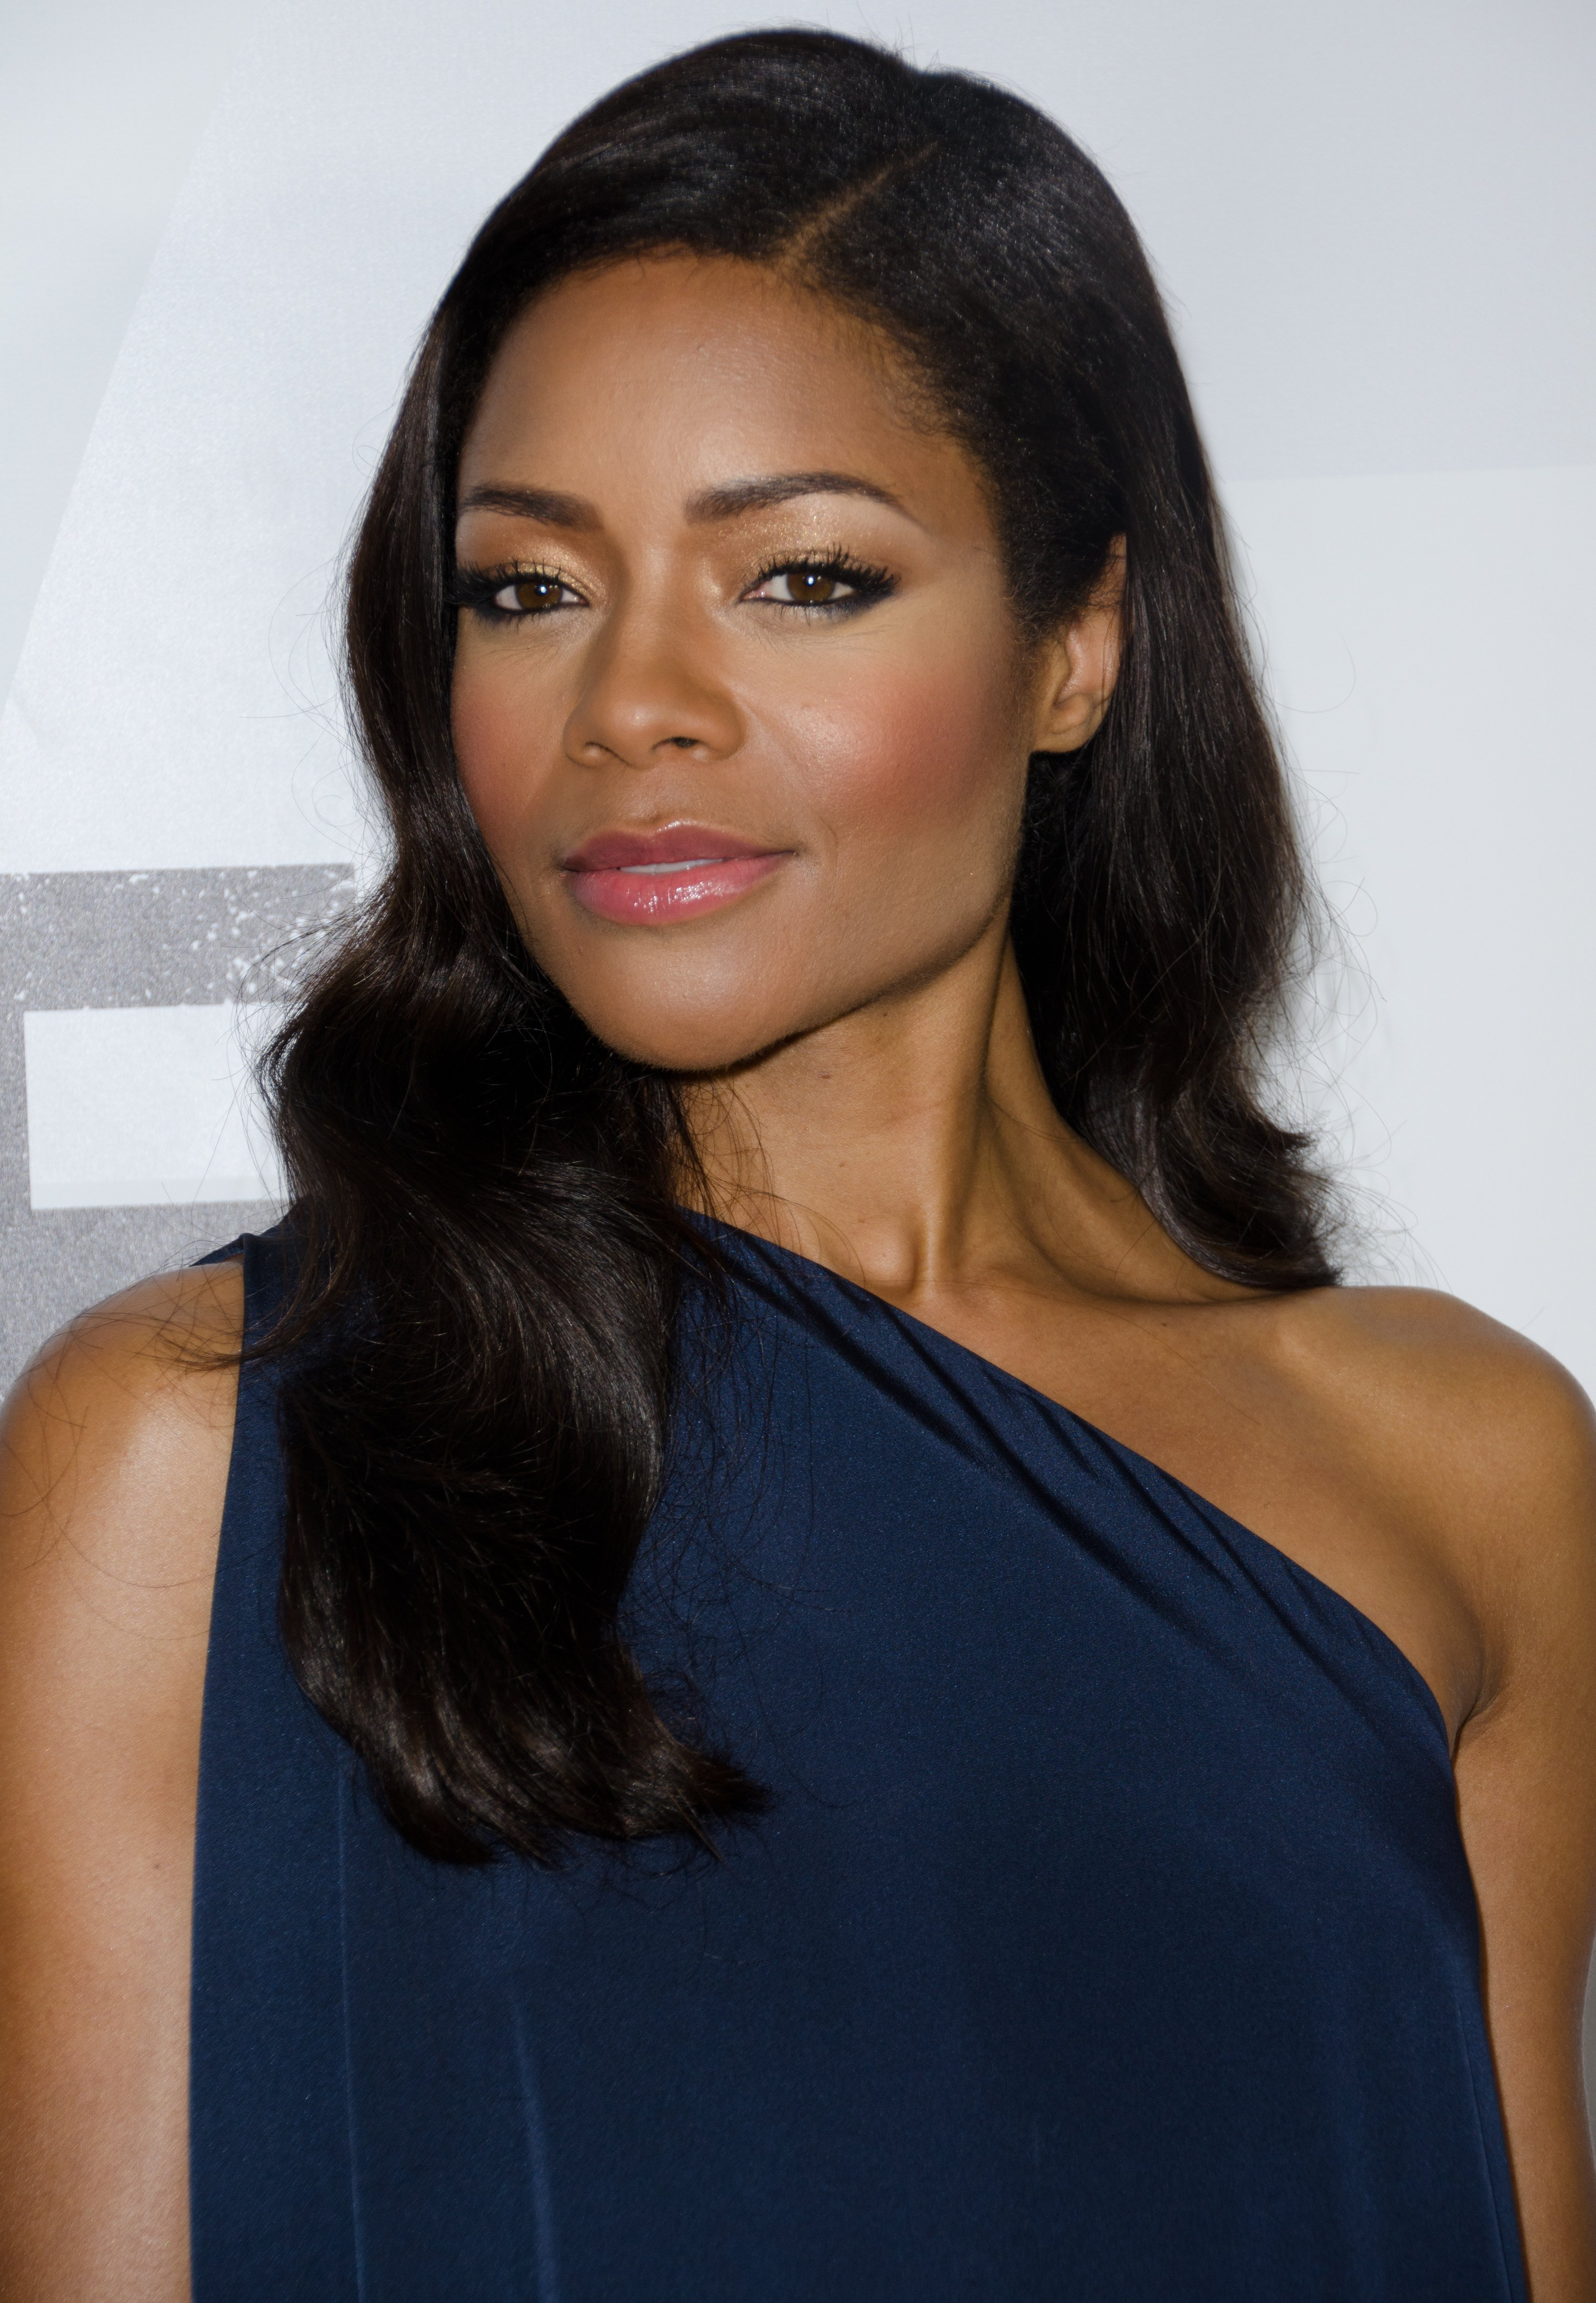 """Naomie Harris at the the Australian premiere of the James Bond film, """"Skyfall"""" at the State Theatre in Sydney in 2012. 